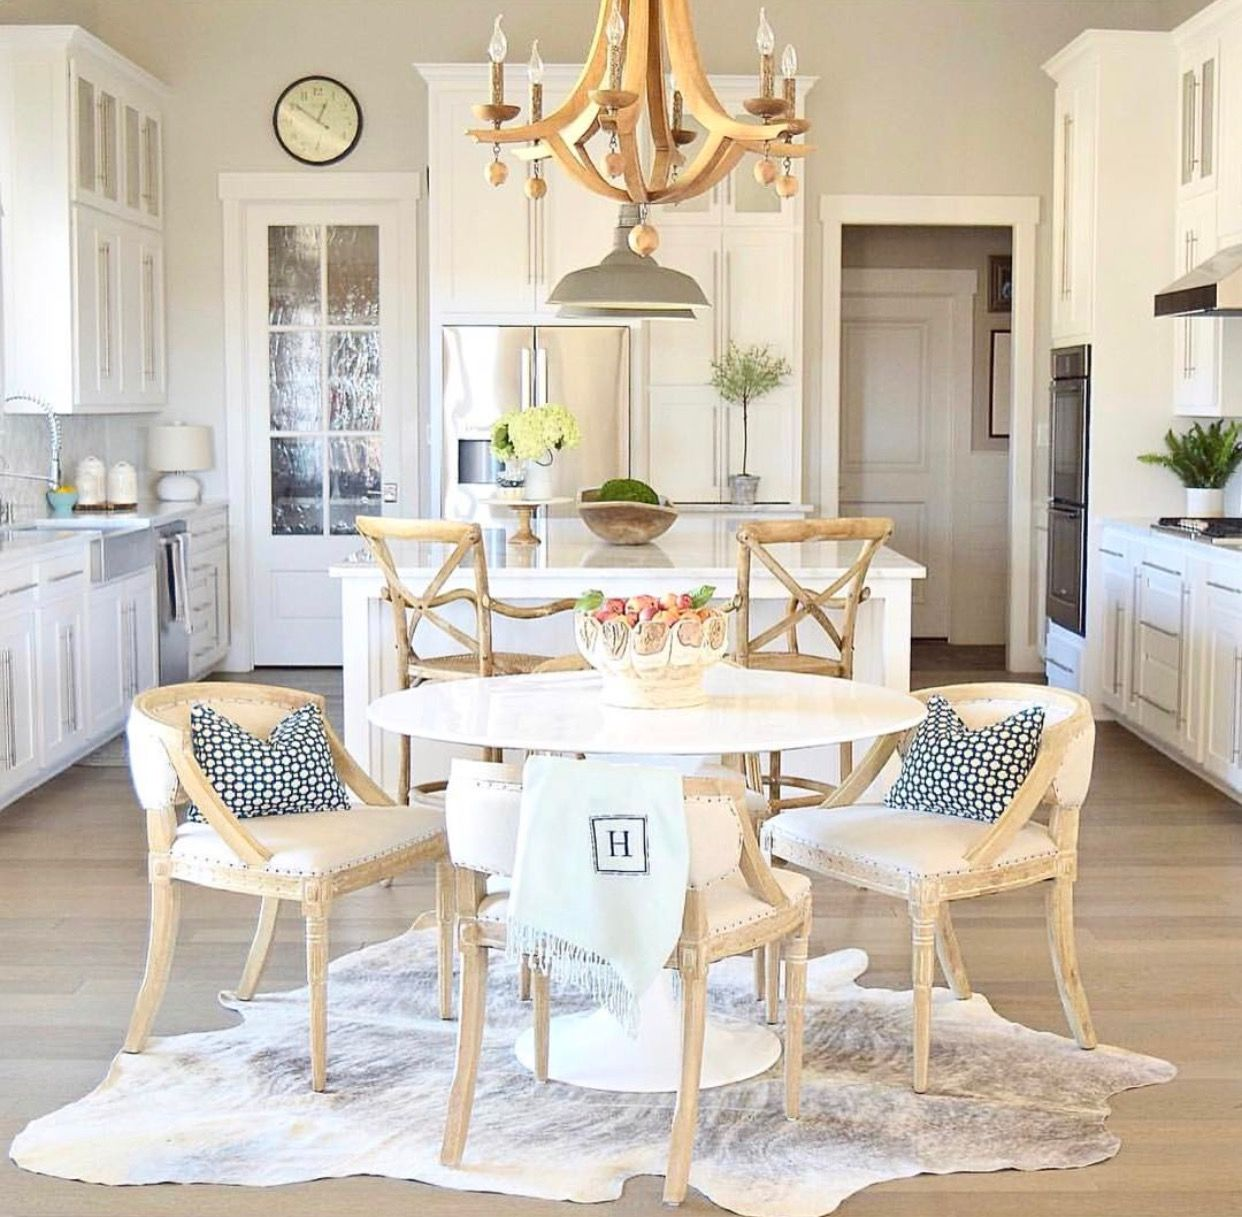 78F13991F9Ea152121D0C9684Fed46D4 1242×1217  Nautical Home Awesome Dining Room With Kitchen Designs Review